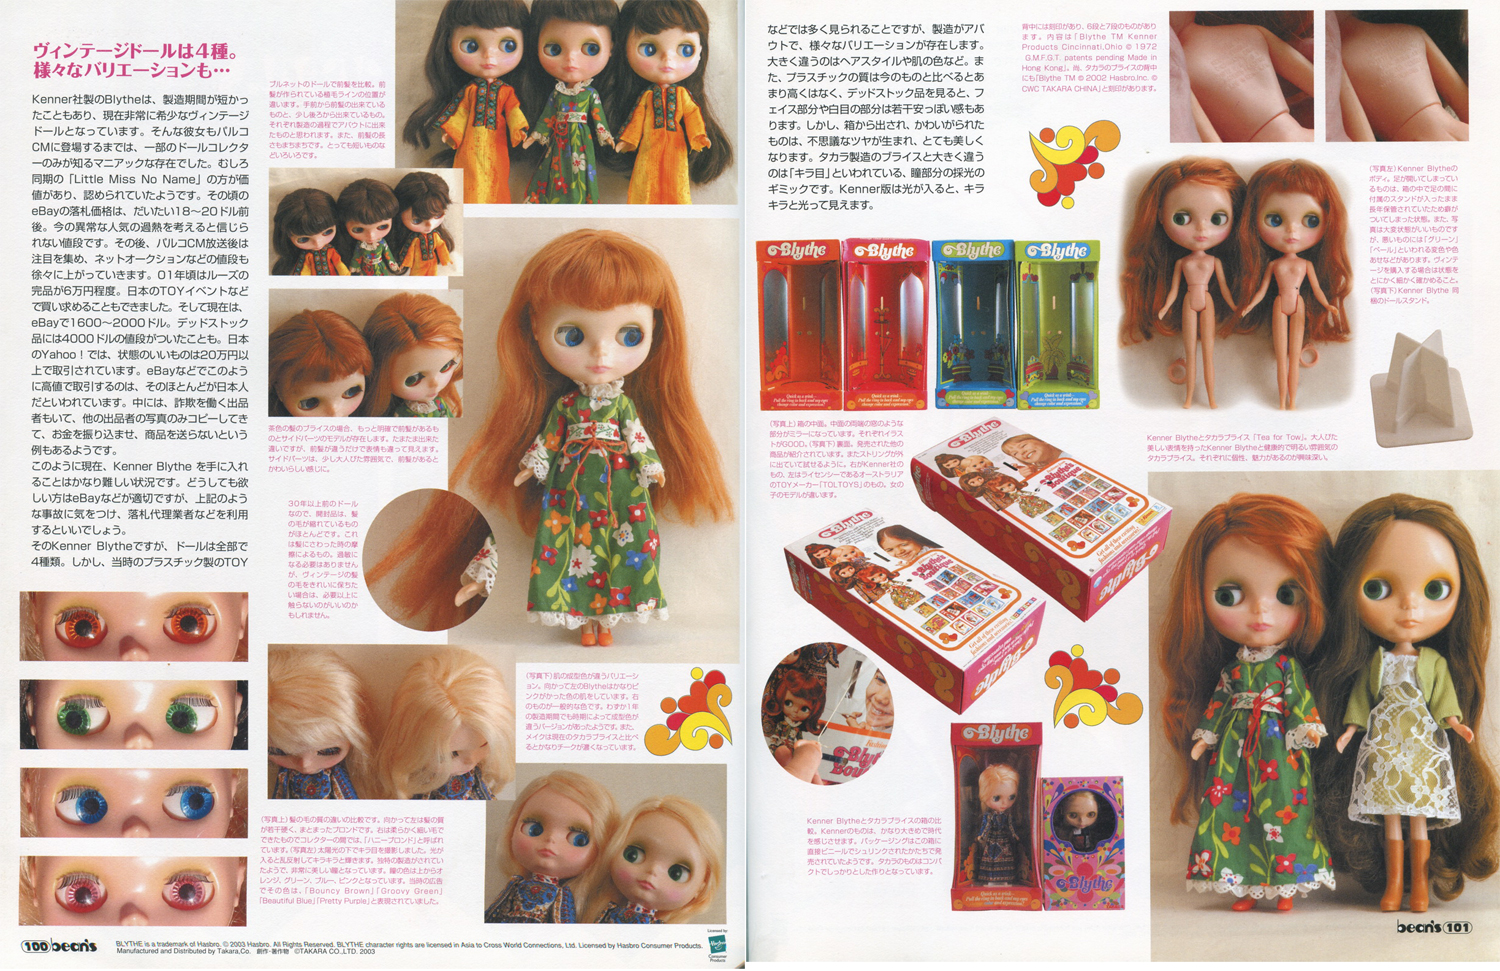 zazie_blytheopedia_kenner_blythe_dolls_advertise04